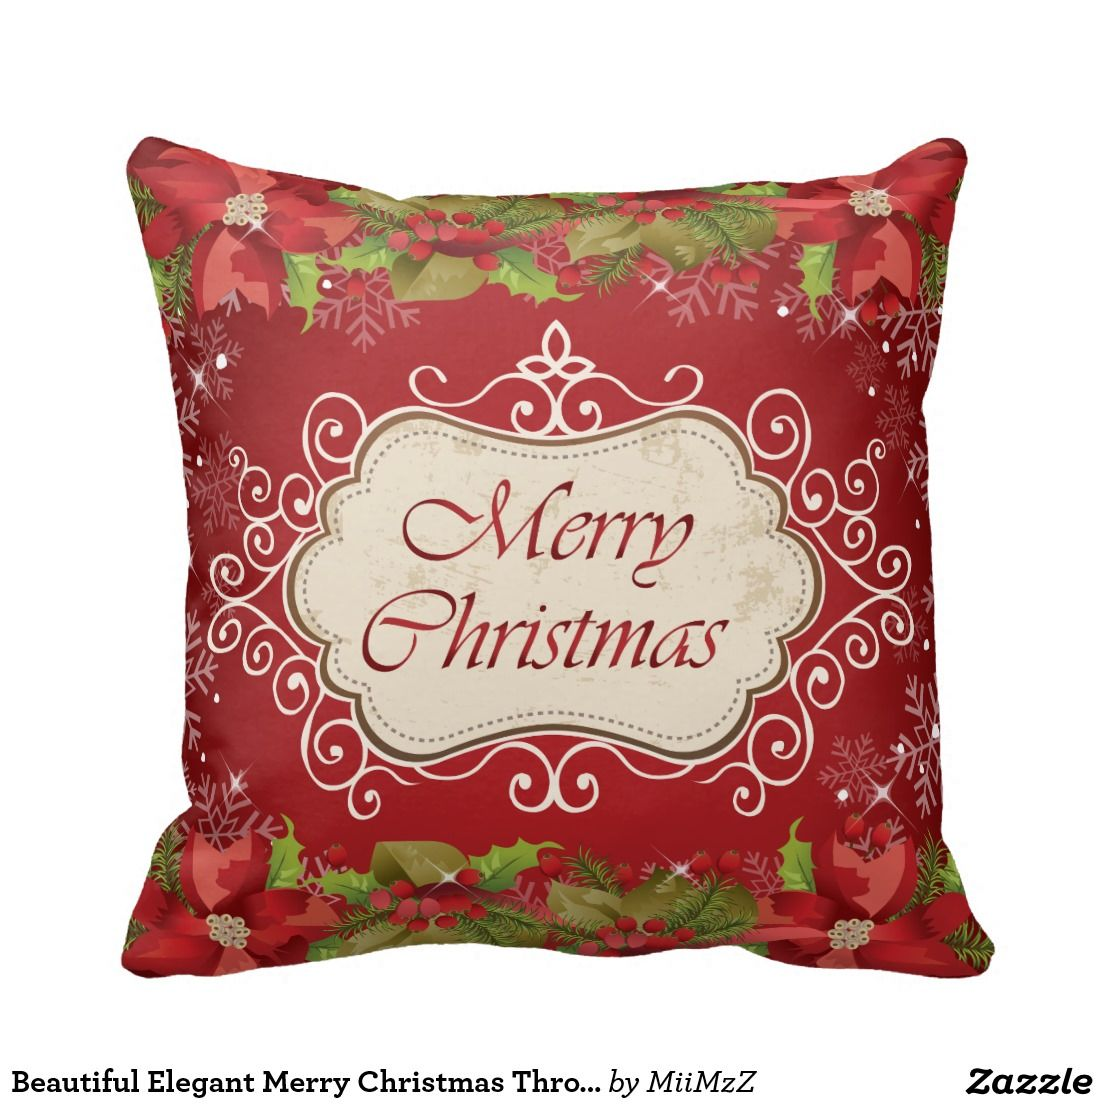 Beautiful Elegant Merry Christmas Throw Pillow #Christmas #merry Christmas #xmas #pillow